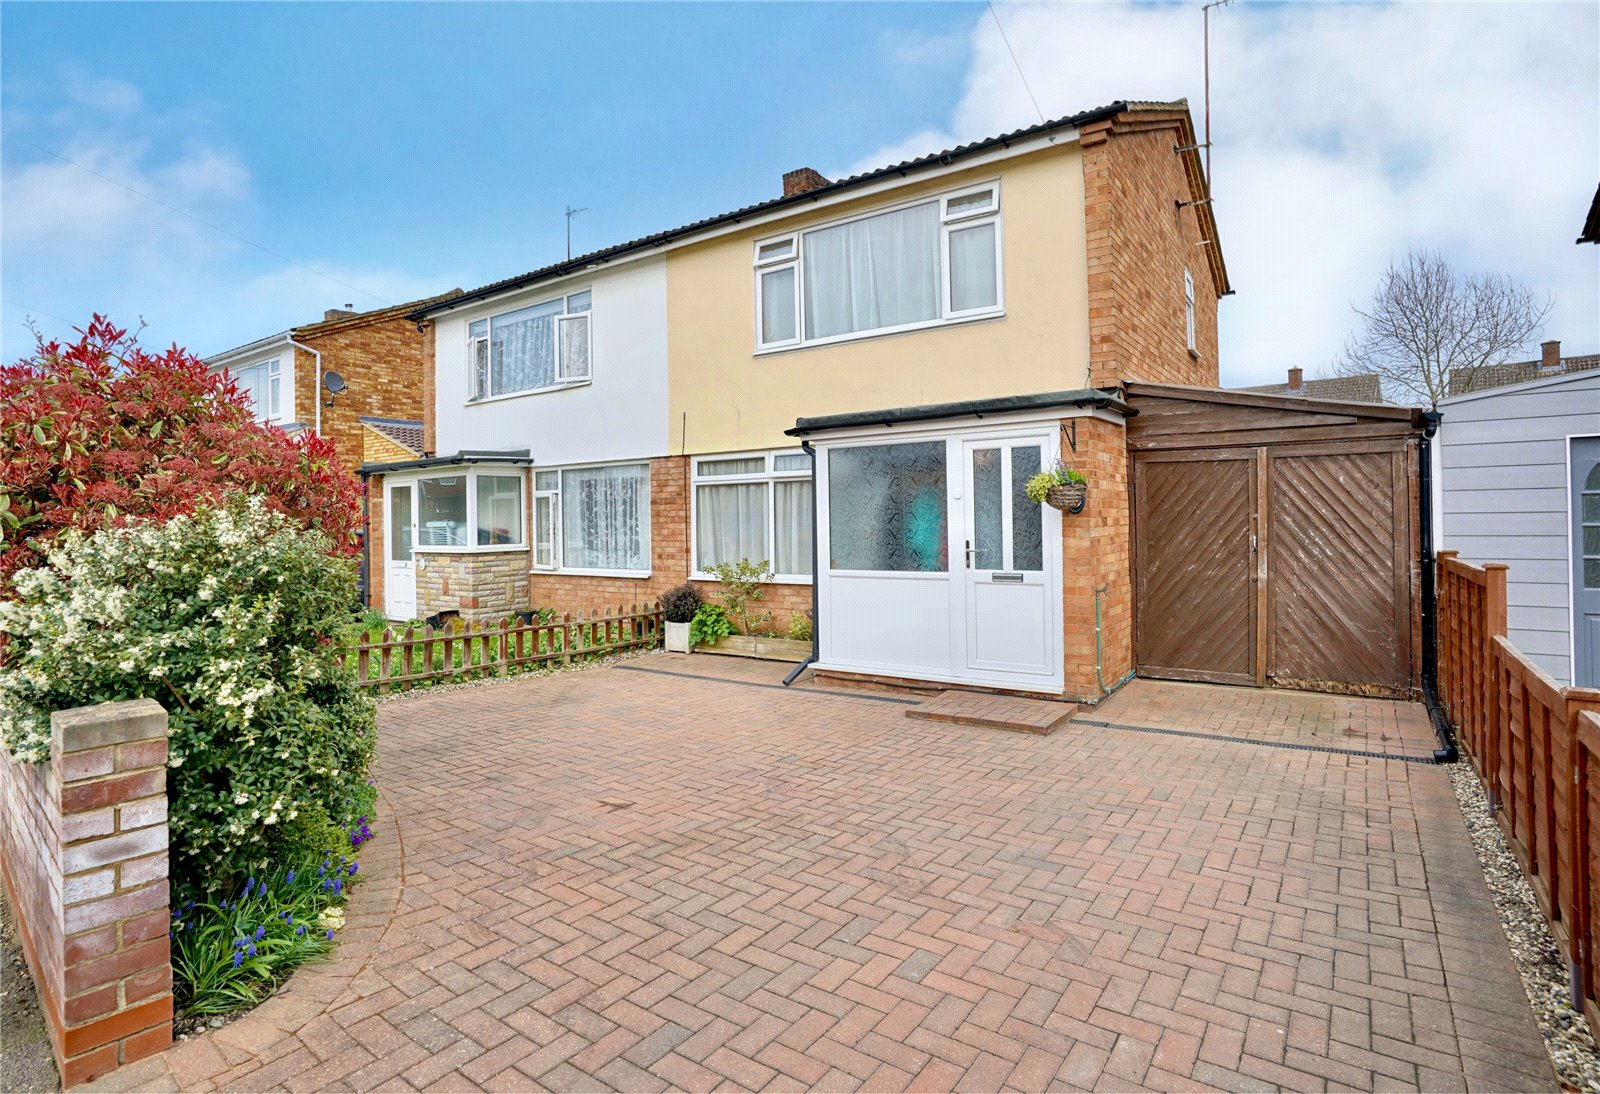 2 bed house for sale in St. Neots, PE19 1SE, PE19